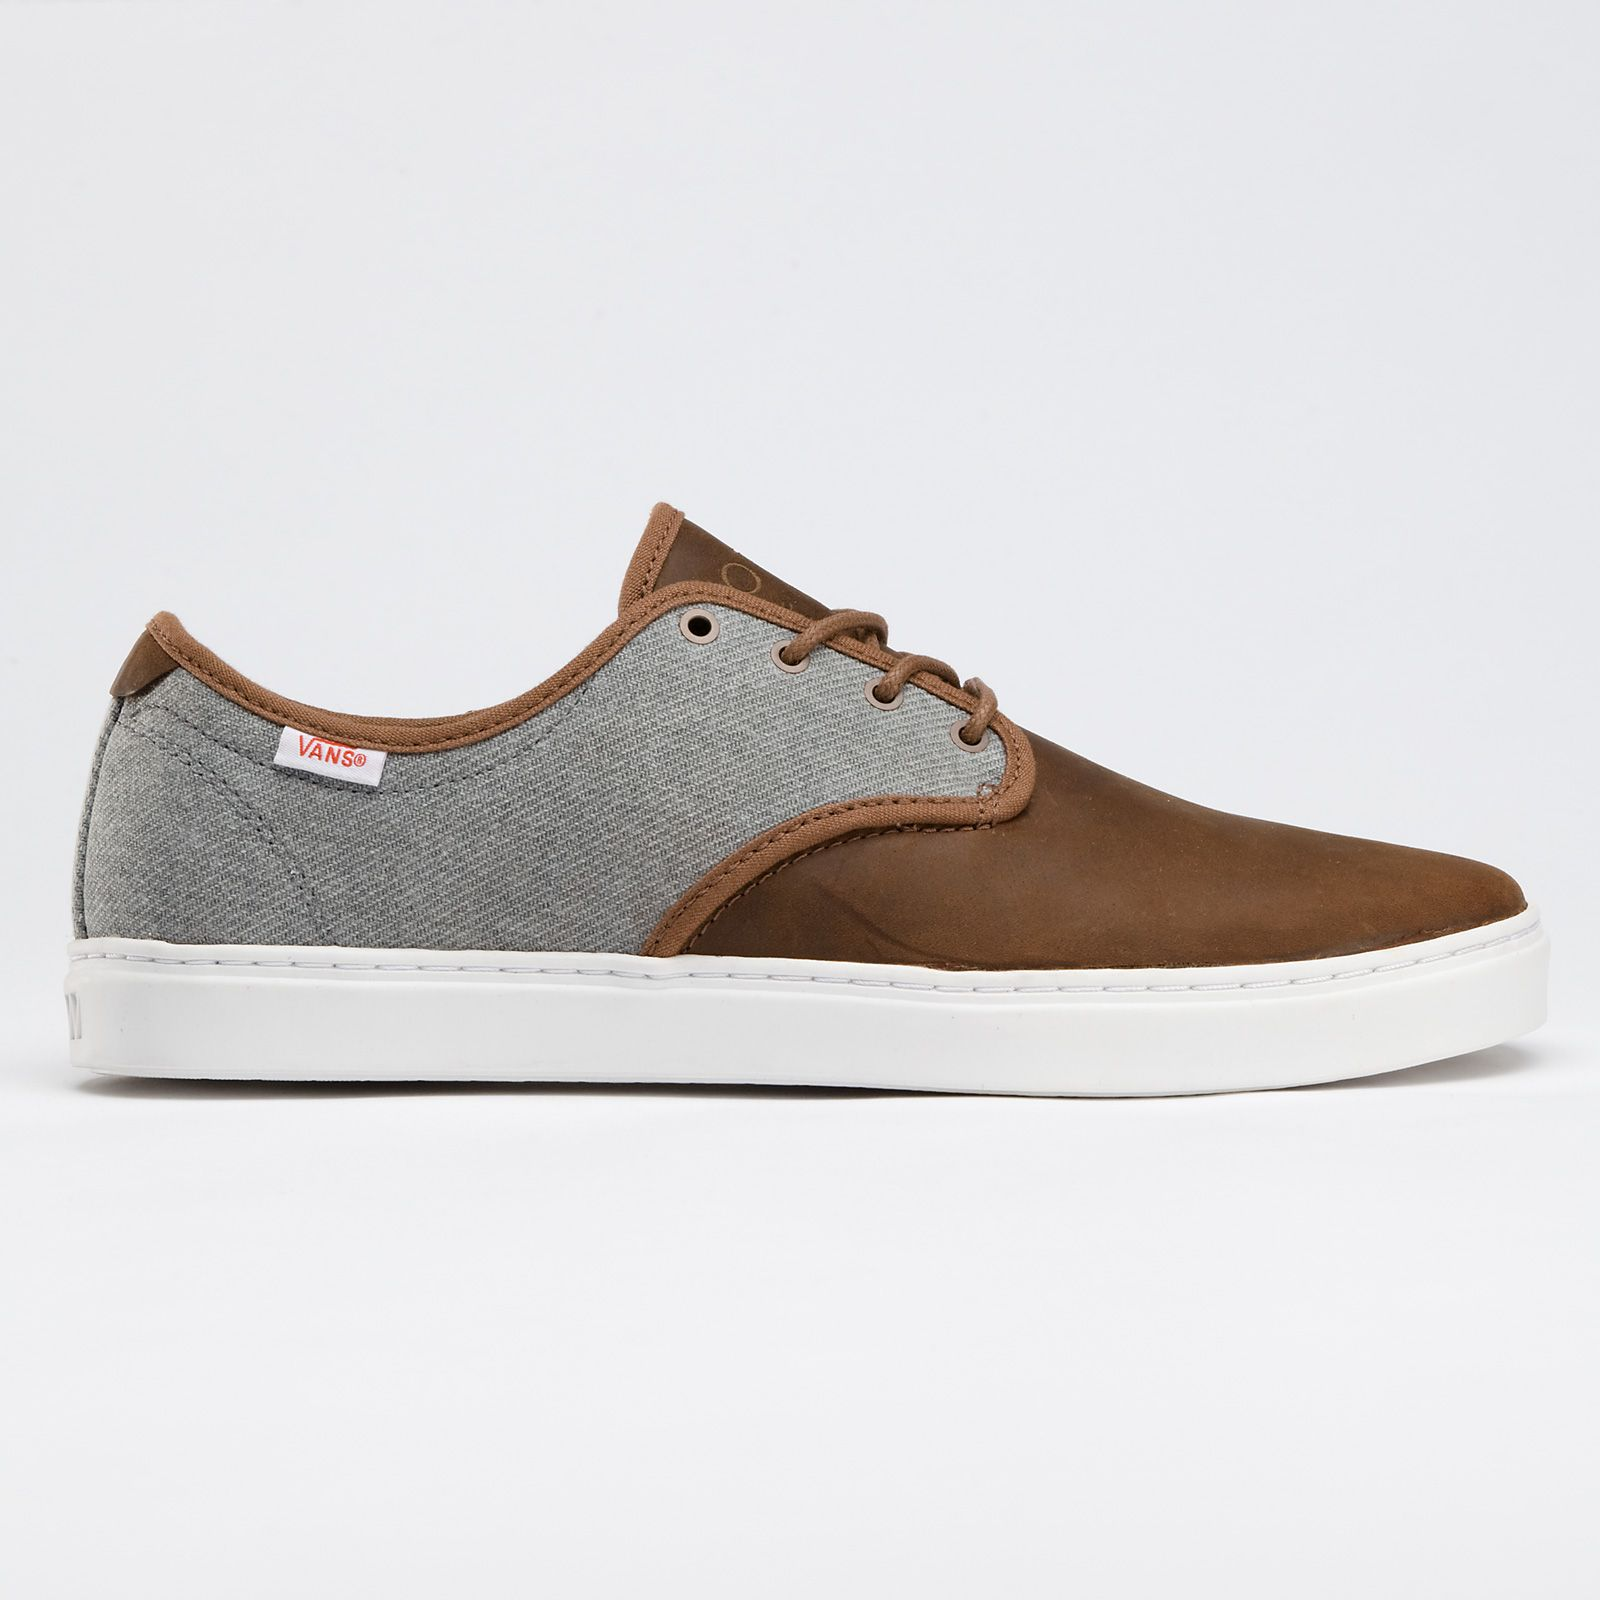 Summer shoes - Vans - Native American Ludlow, $85